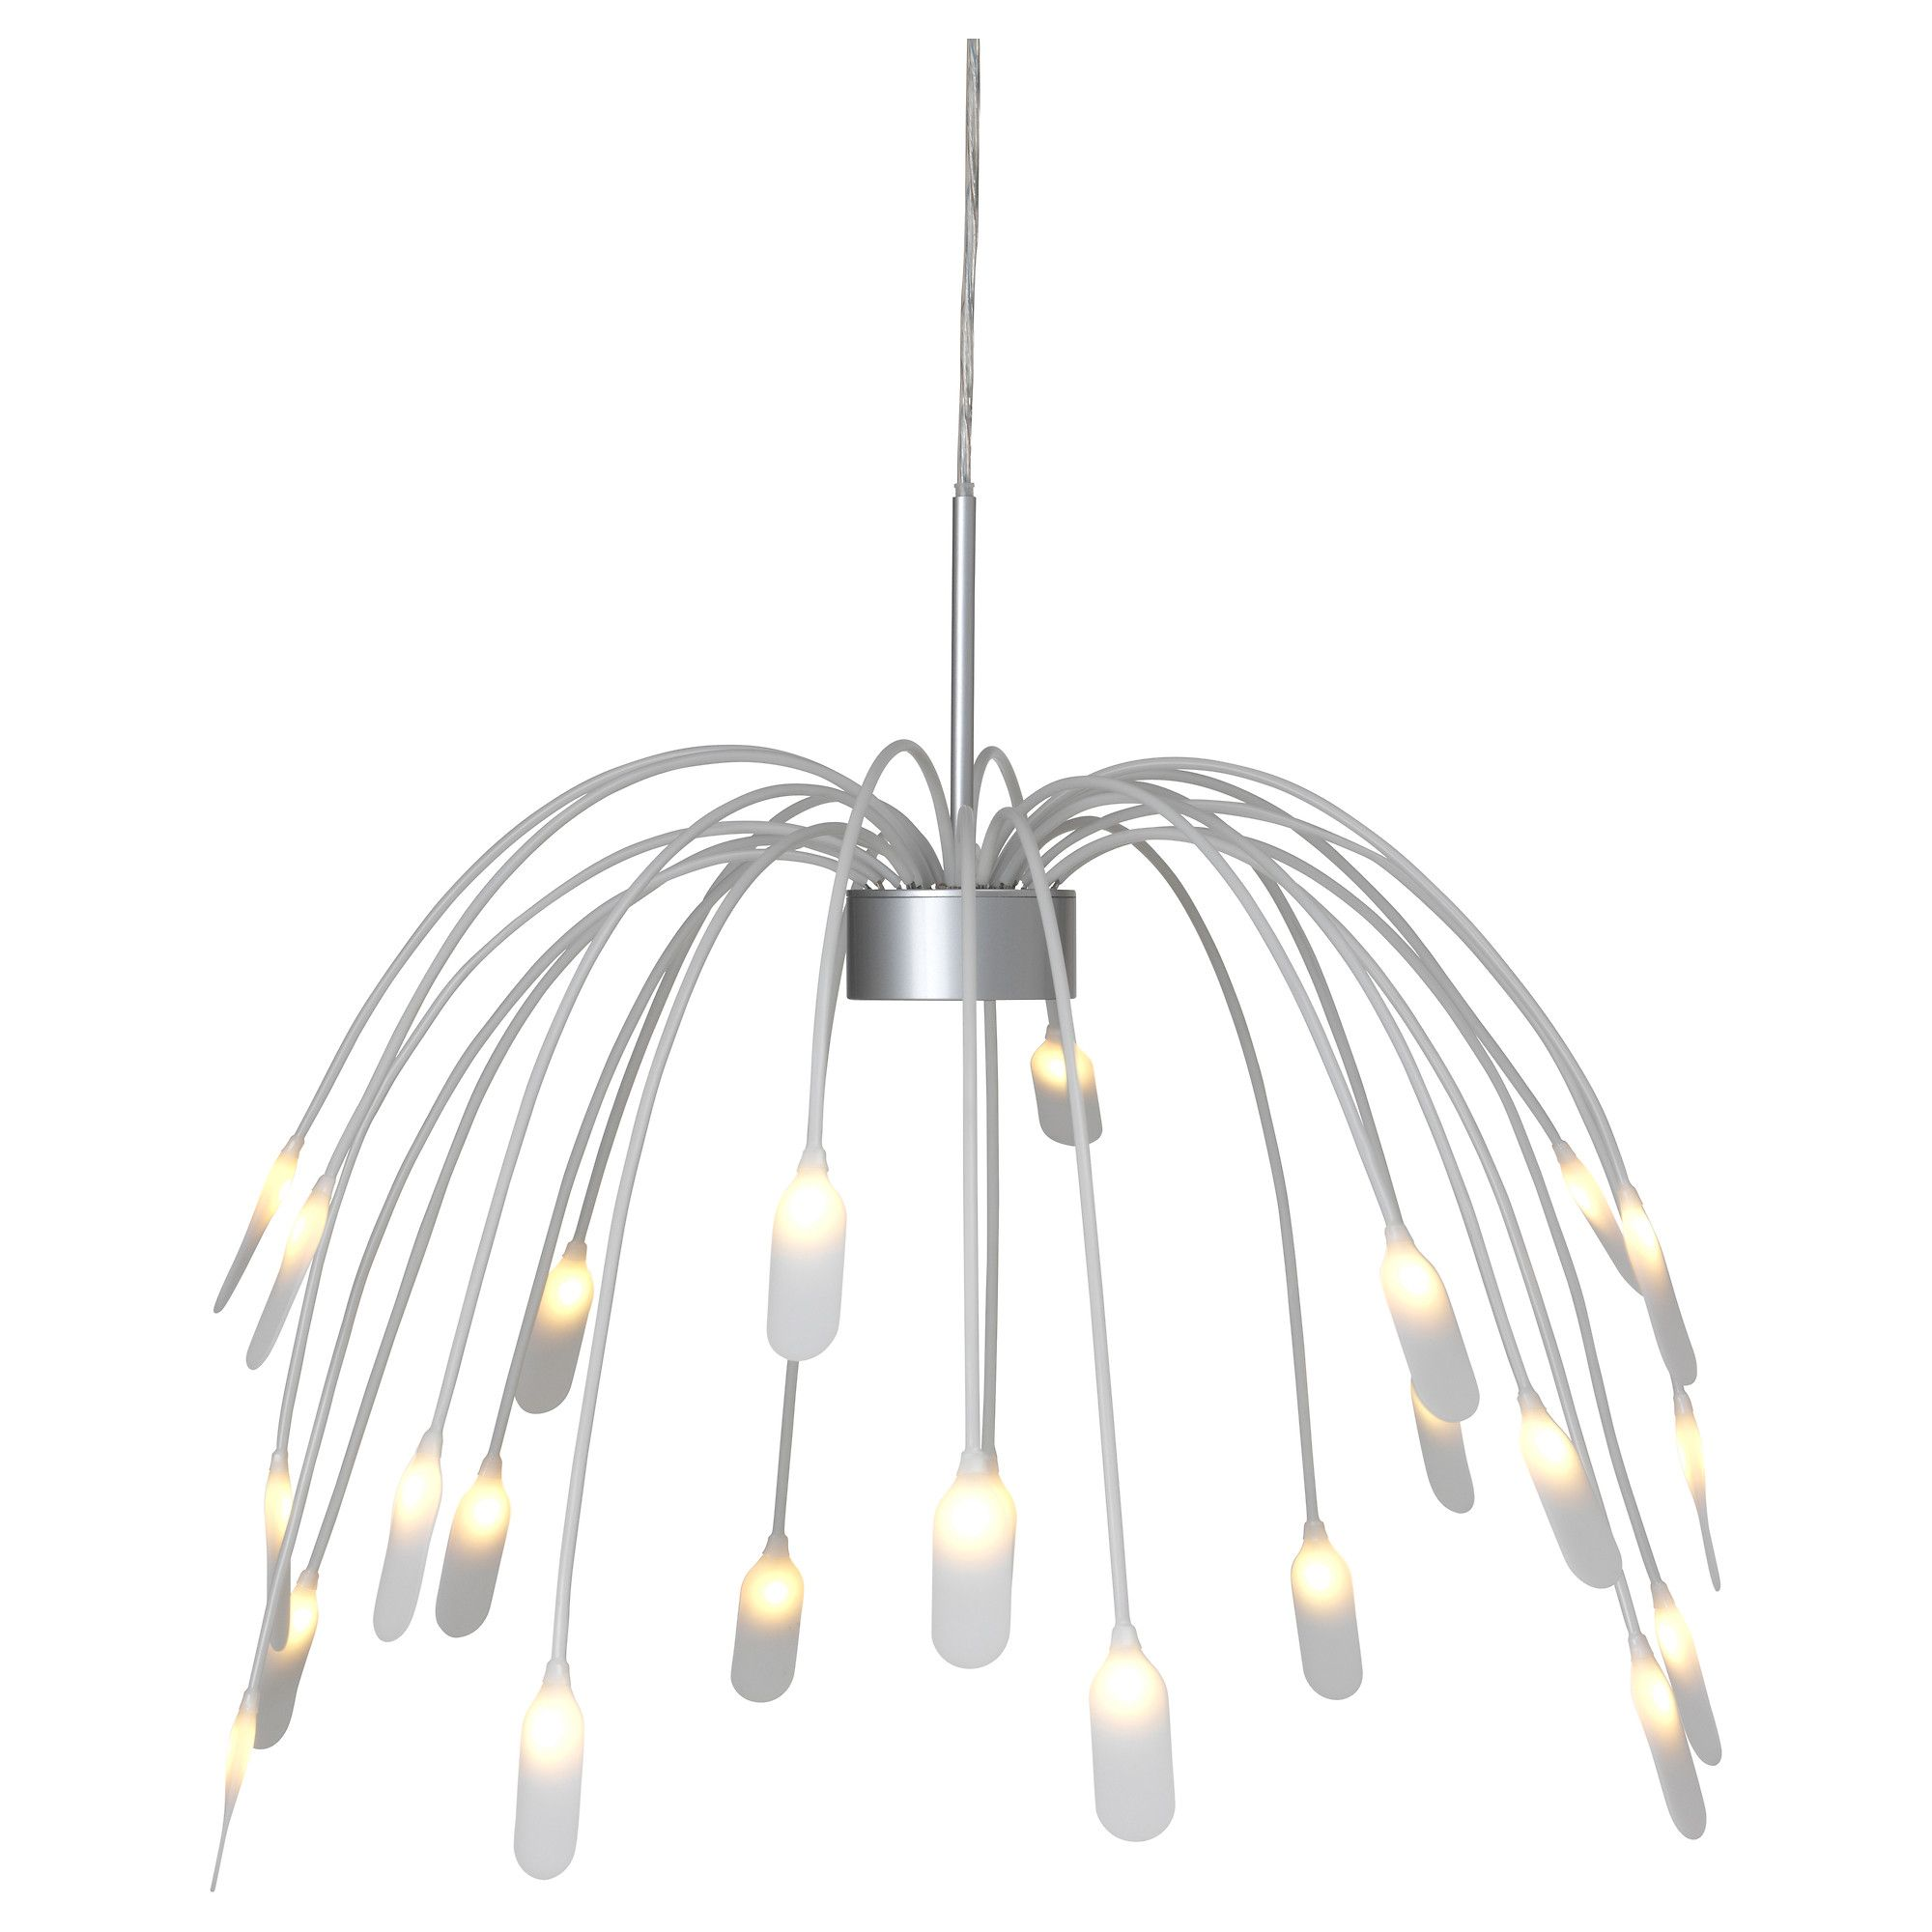 Hggs led pendant lamp ikea decorating ideas pinterest i love this lamp hung upside down so it looks like a bouquet of perky flowers instead of a hanging plant hggs led pendant lamp ikea leds glow at the end arubaitofo Images